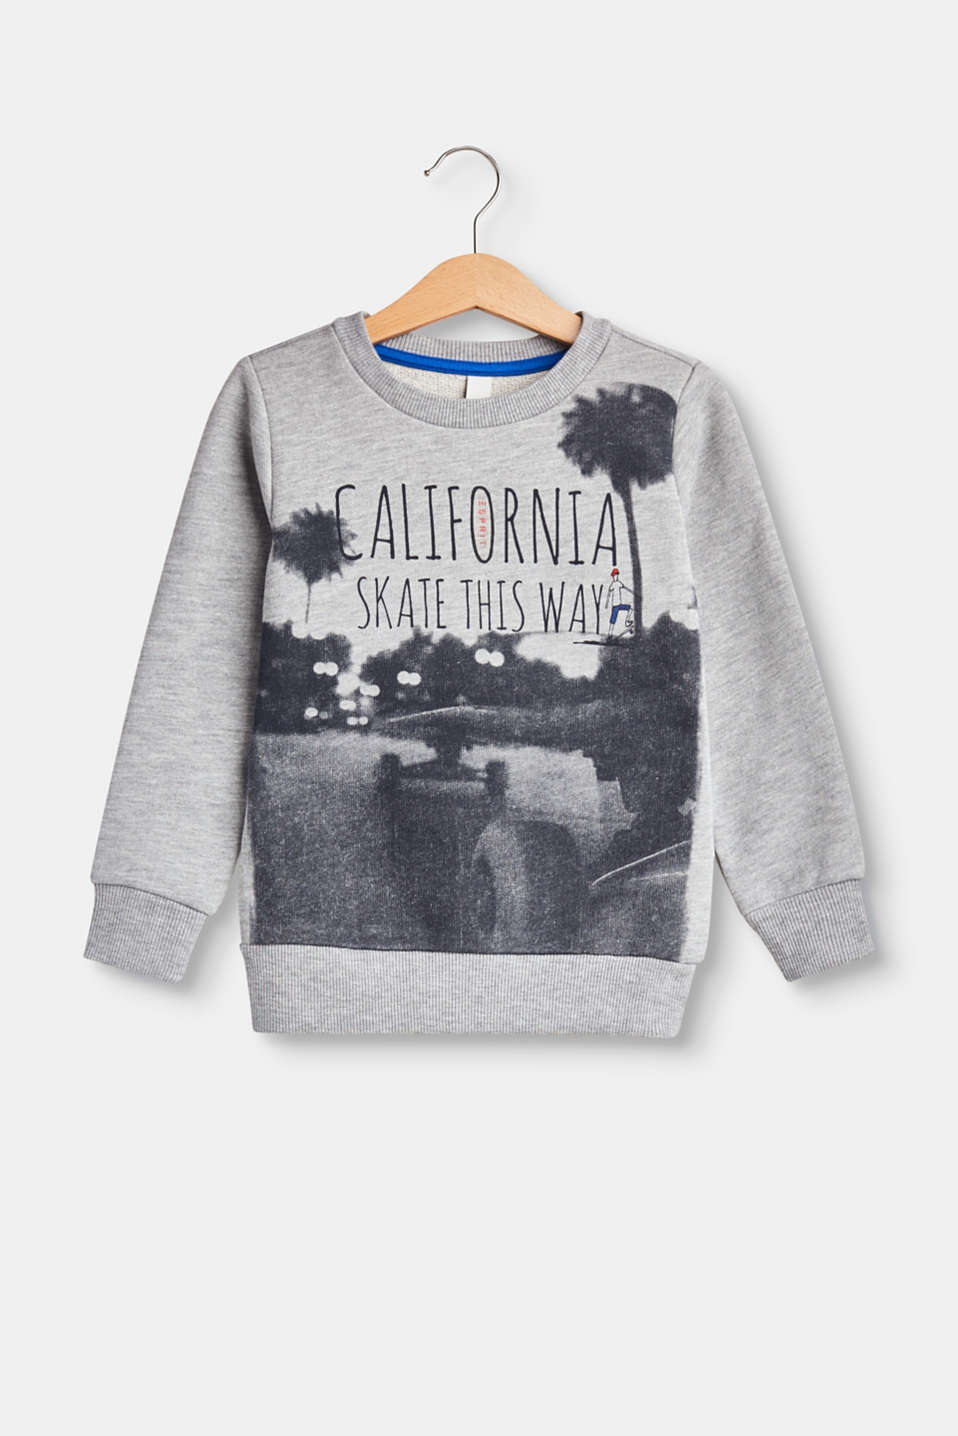 This soft sweatshirt exudes cool vibes thanks to the photo prints with a slogan.